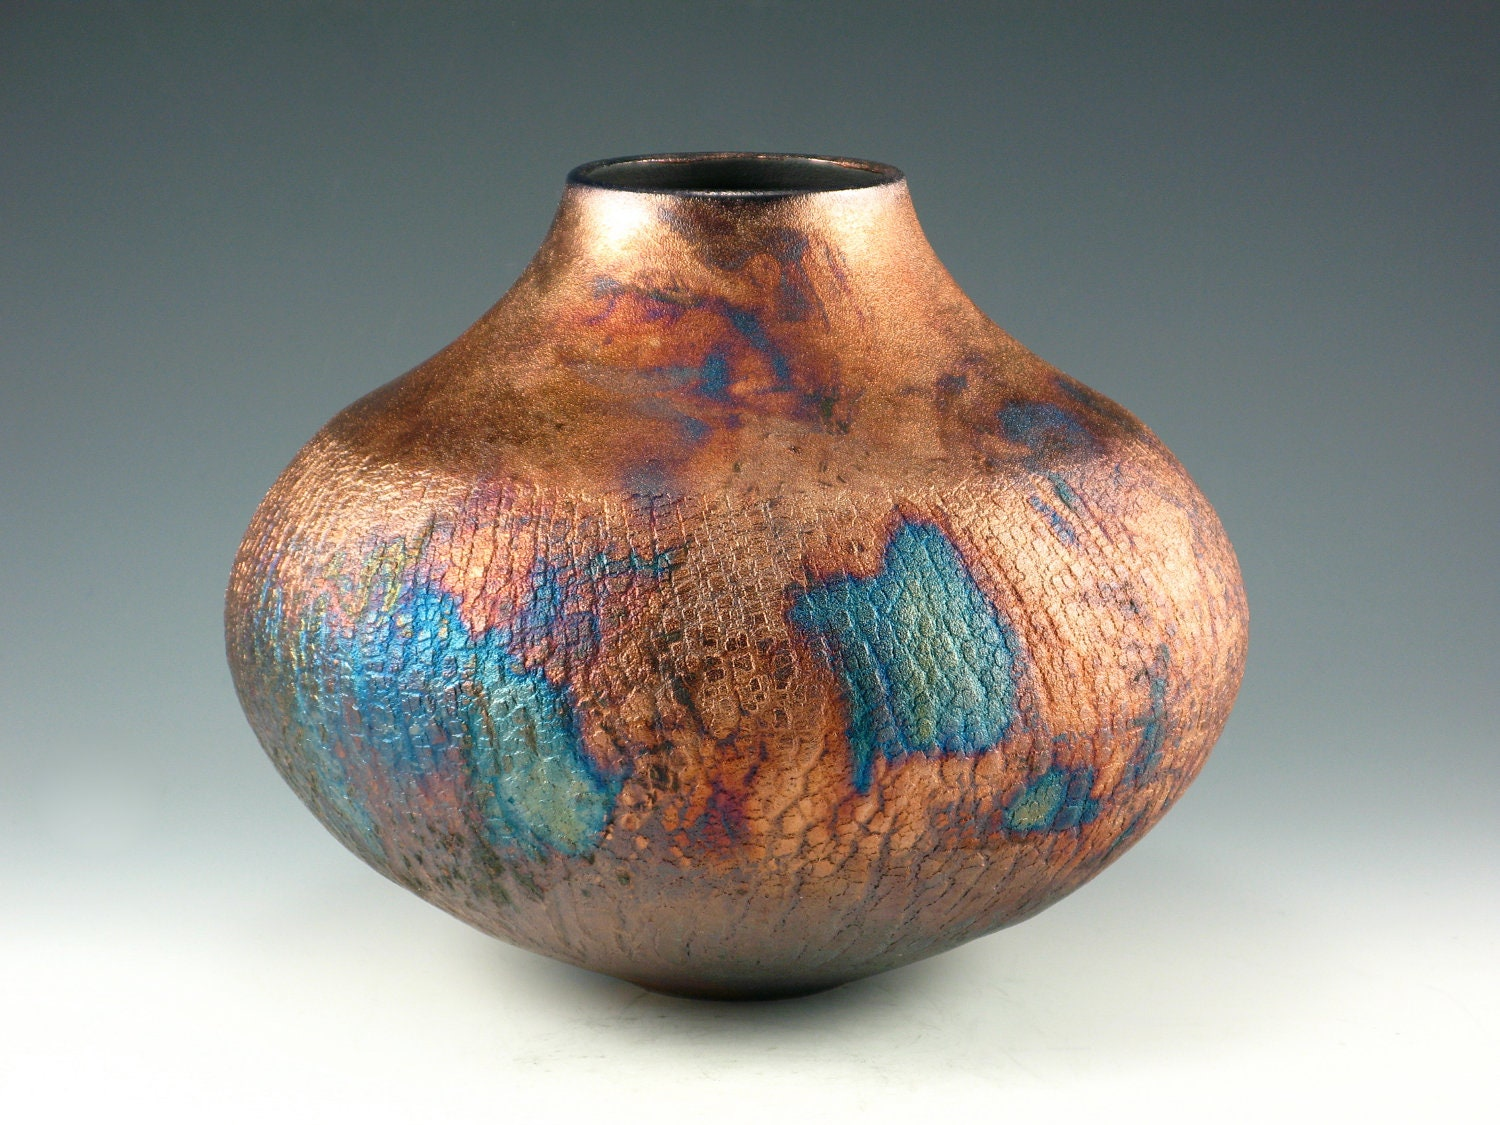 metallic vase raku pottery vase blue and copper penny deko bodenvase wei 80 cm hoch dekoration. Black Bedroom Furniture Sets. Home Design Ideas